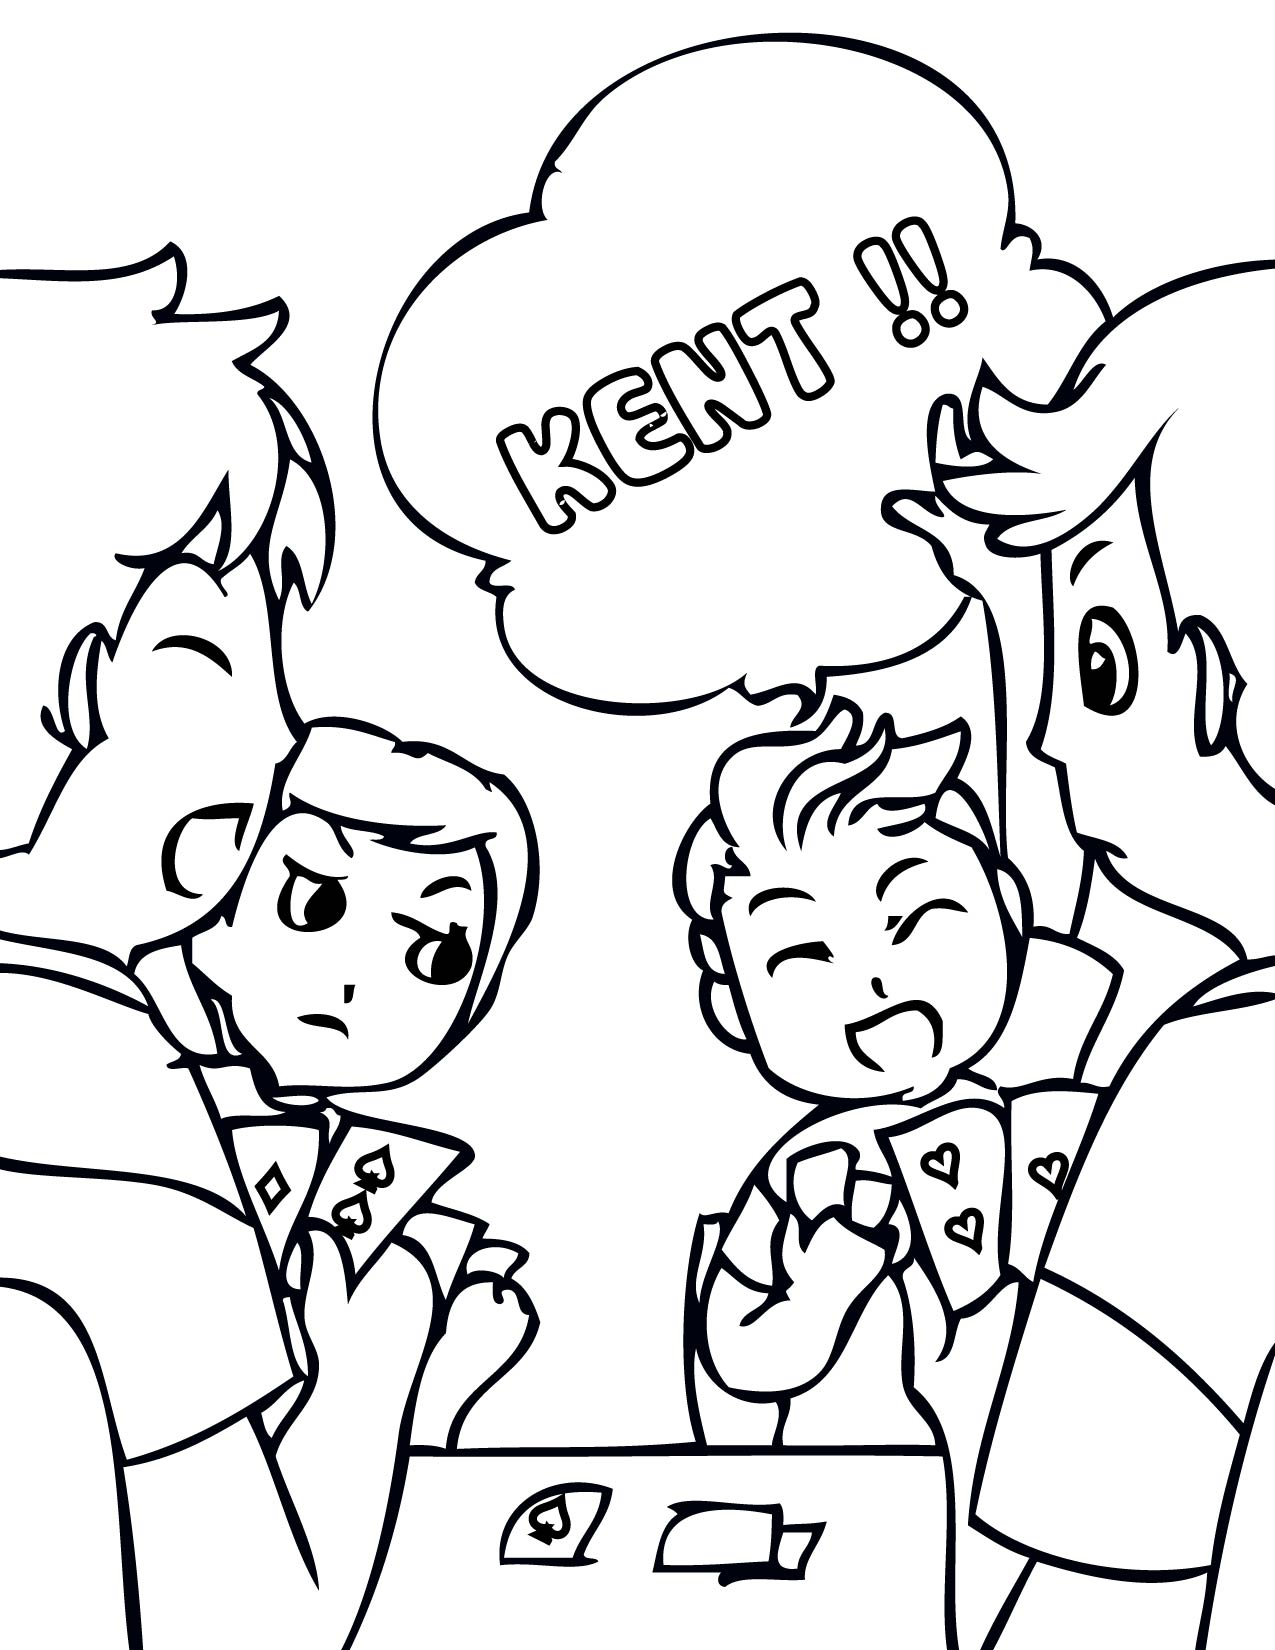 card game coloring pages - photo#3